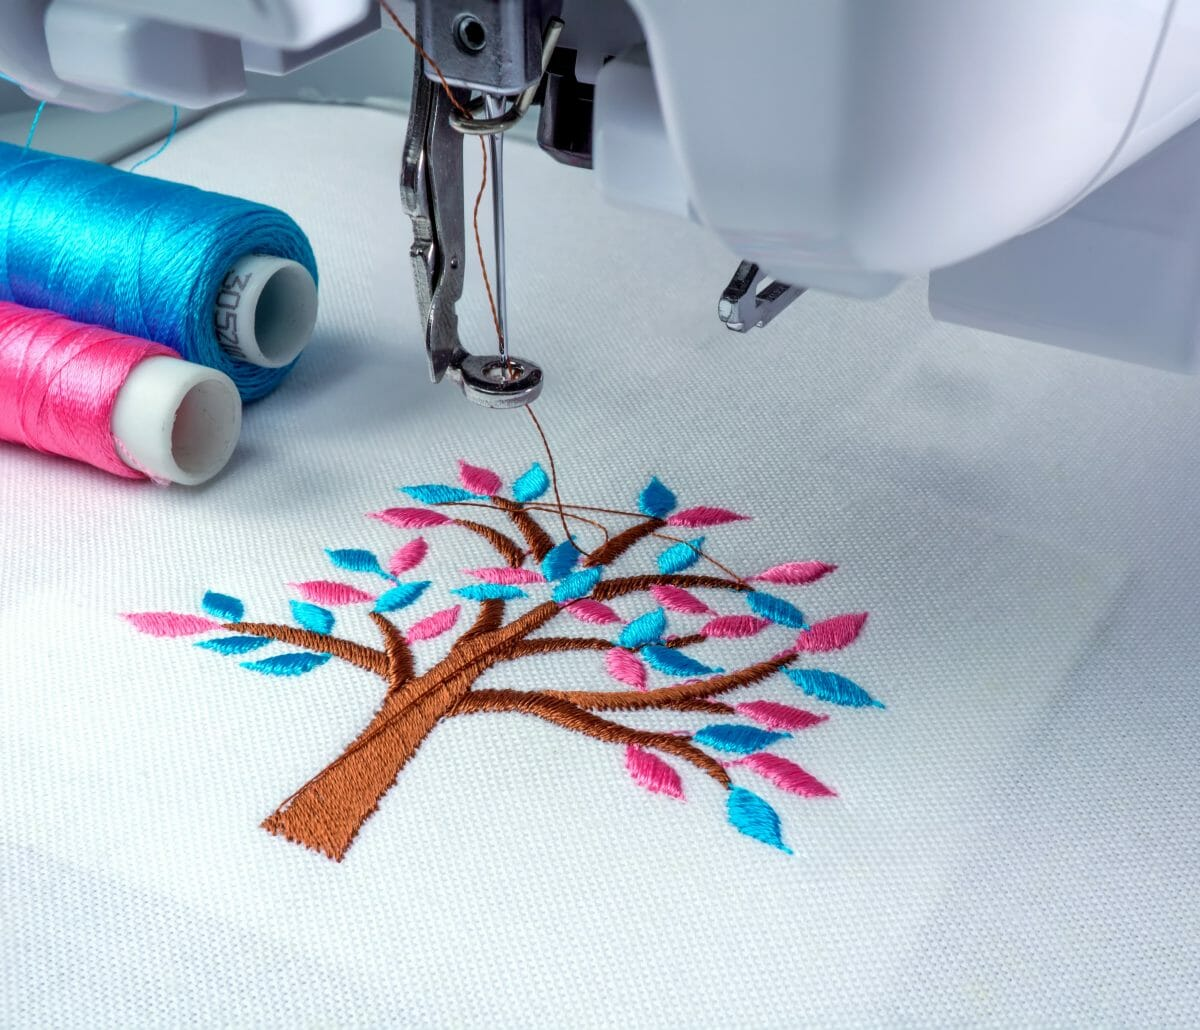 Finding the perfect colour for embroidery hobbyists